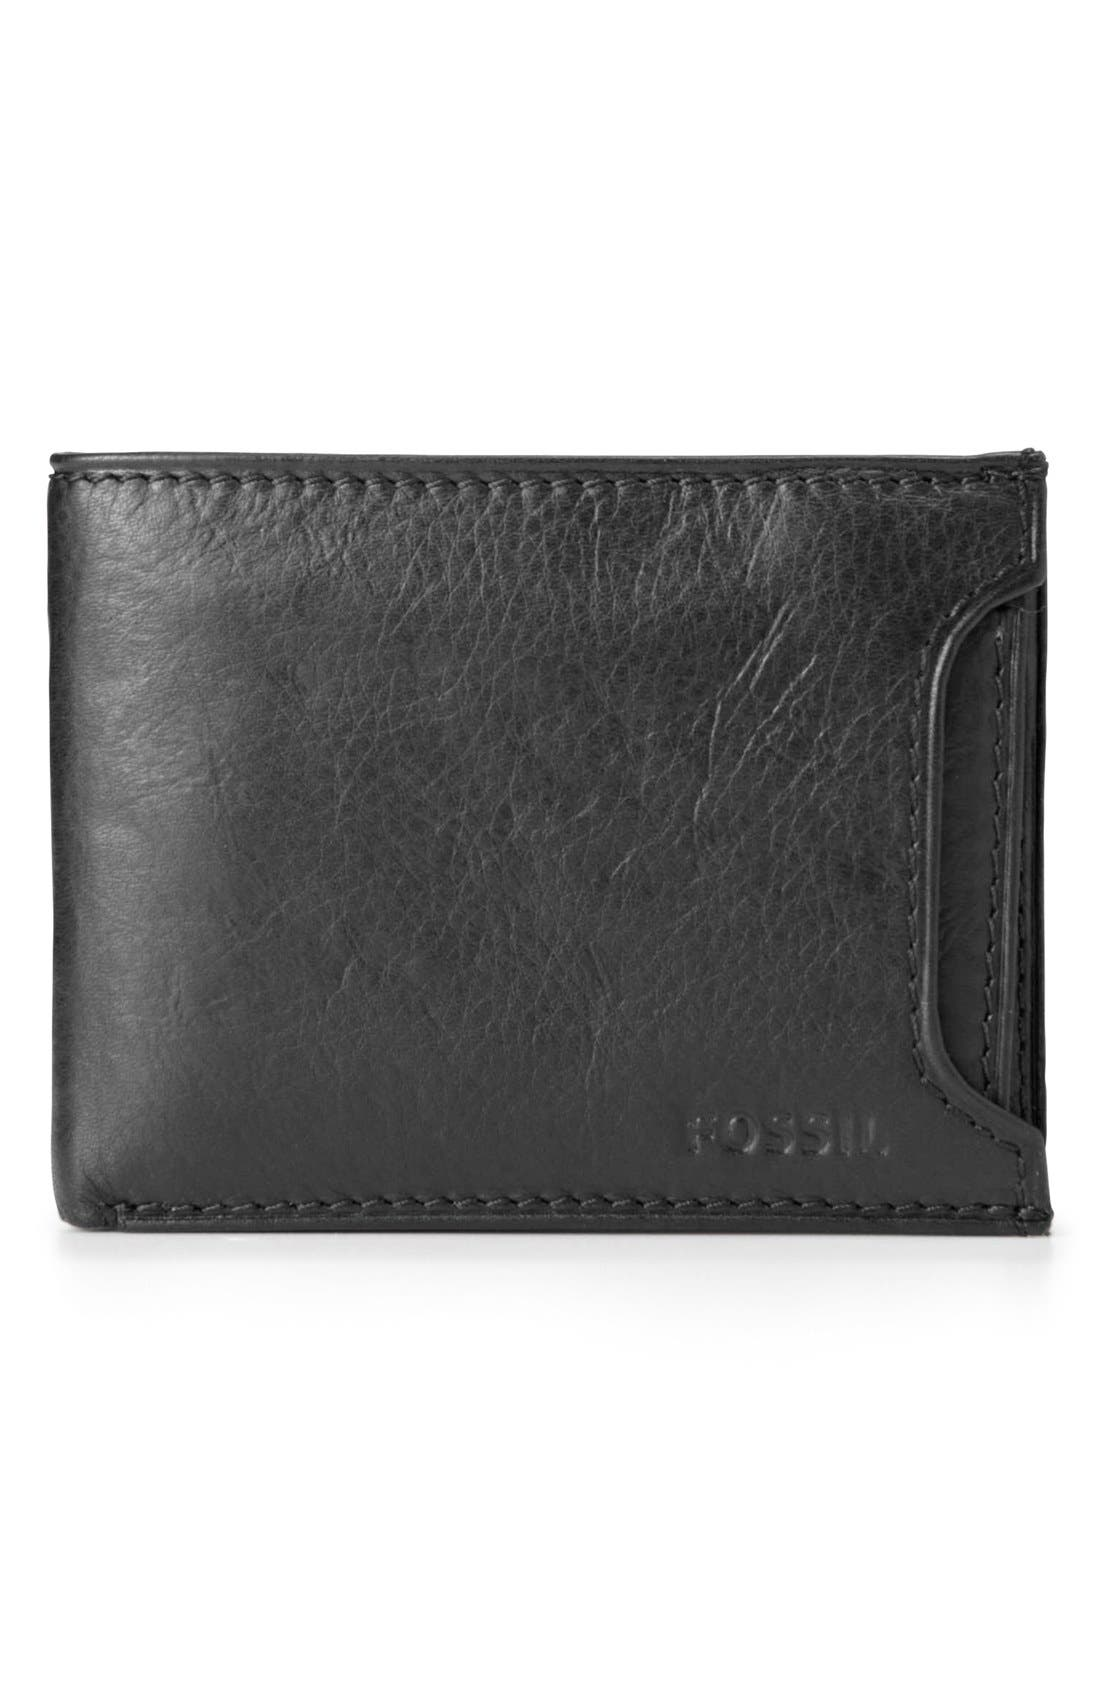 Fossil Ingram Sliding 2-in-1 Wallet